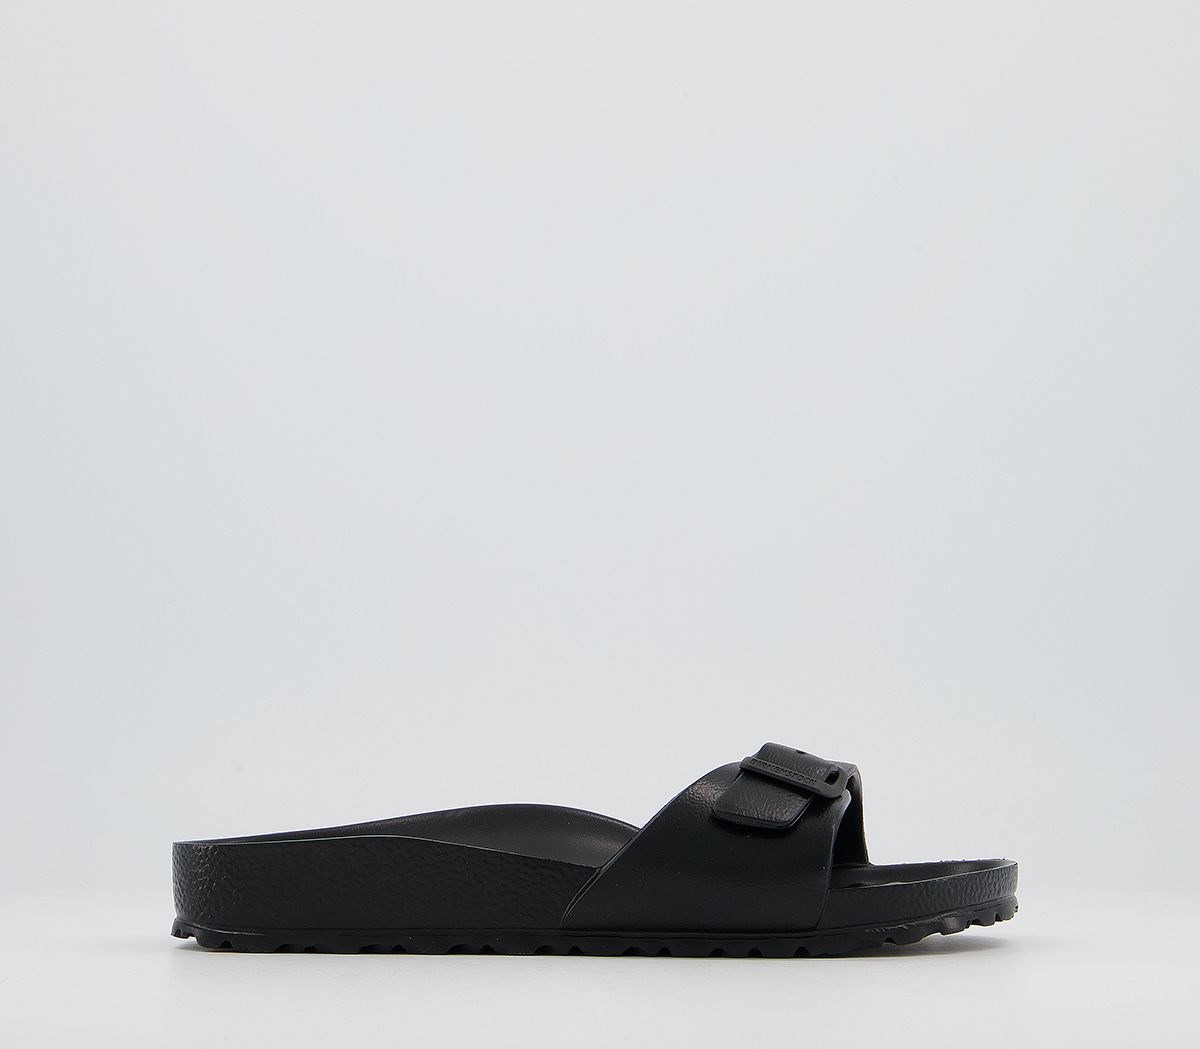 7e847b223713 Birkenstock Madrid 1 Bar Mule Black Eva - Sandals